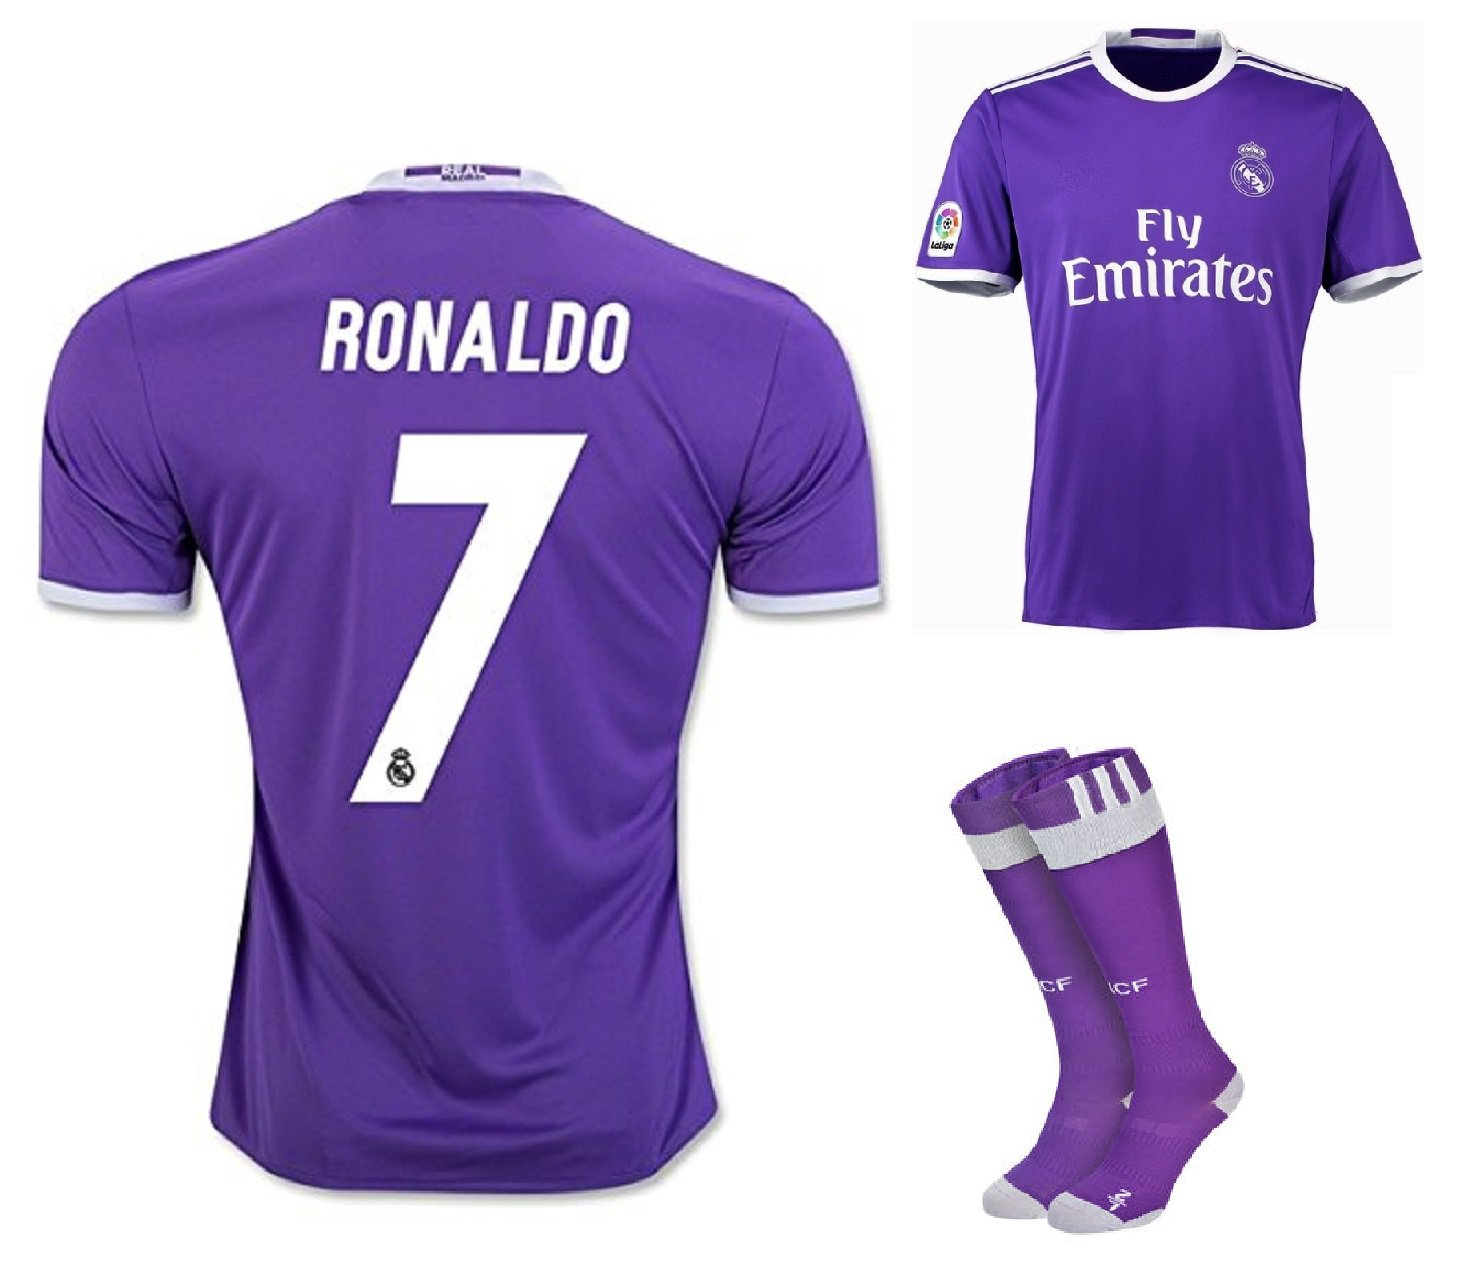 Real Madrid #7 Ronaldo 2nd Away jersey with shorts & socks kid youth for age 10-12